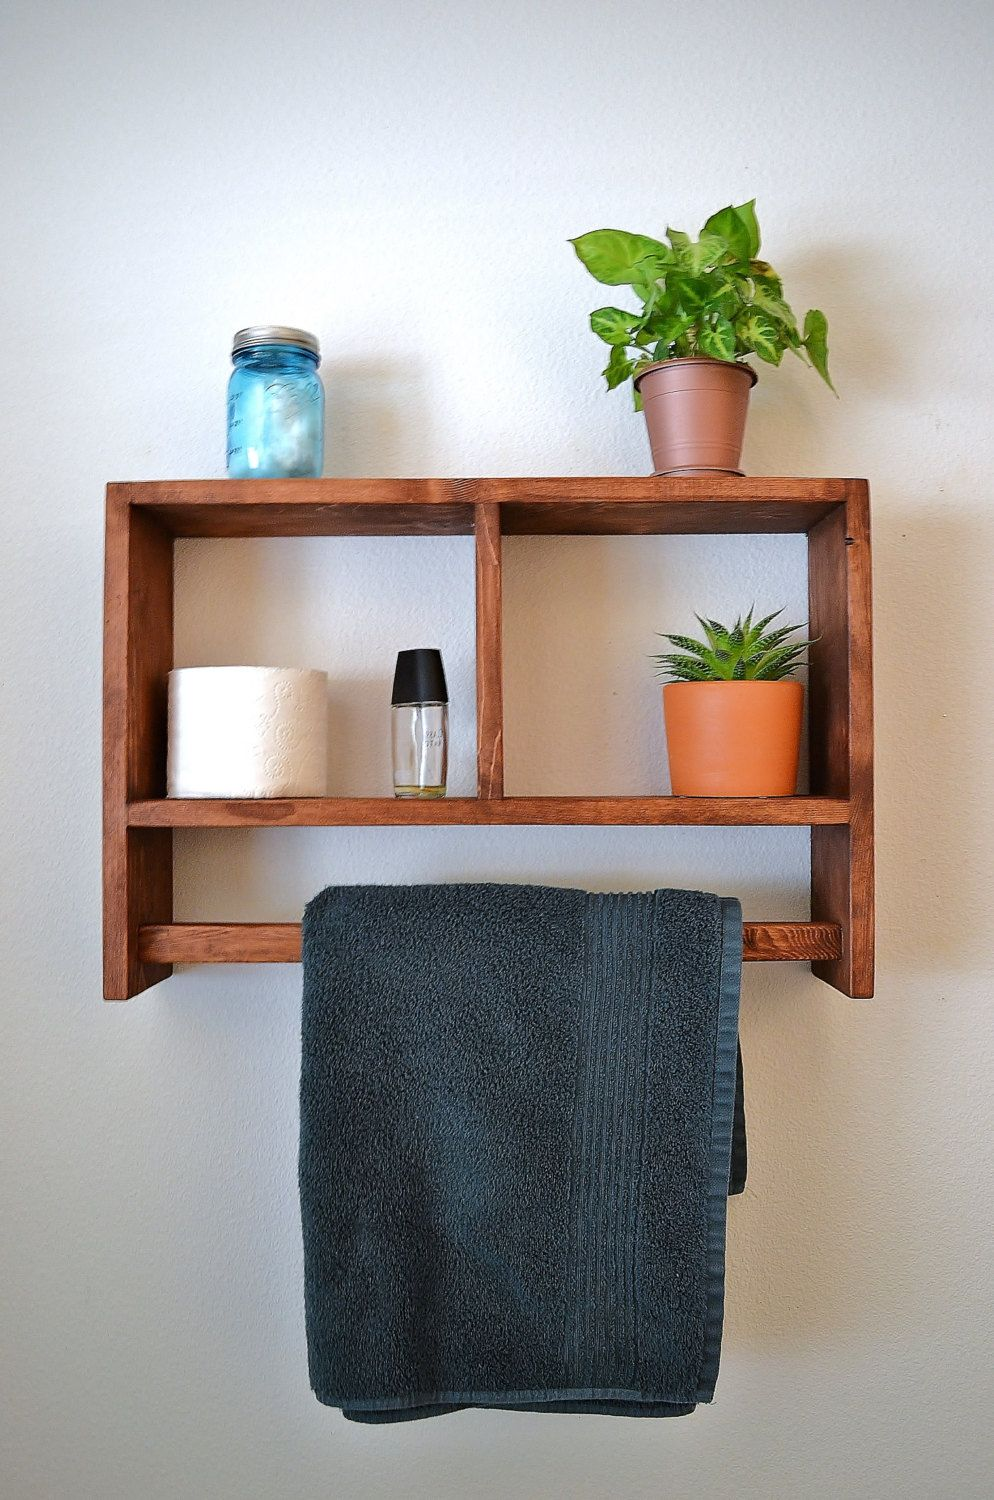 Rustic Shelf,Towel Rack,Bathroom Shelf,Rustic Shelf,Shelf,towel ...